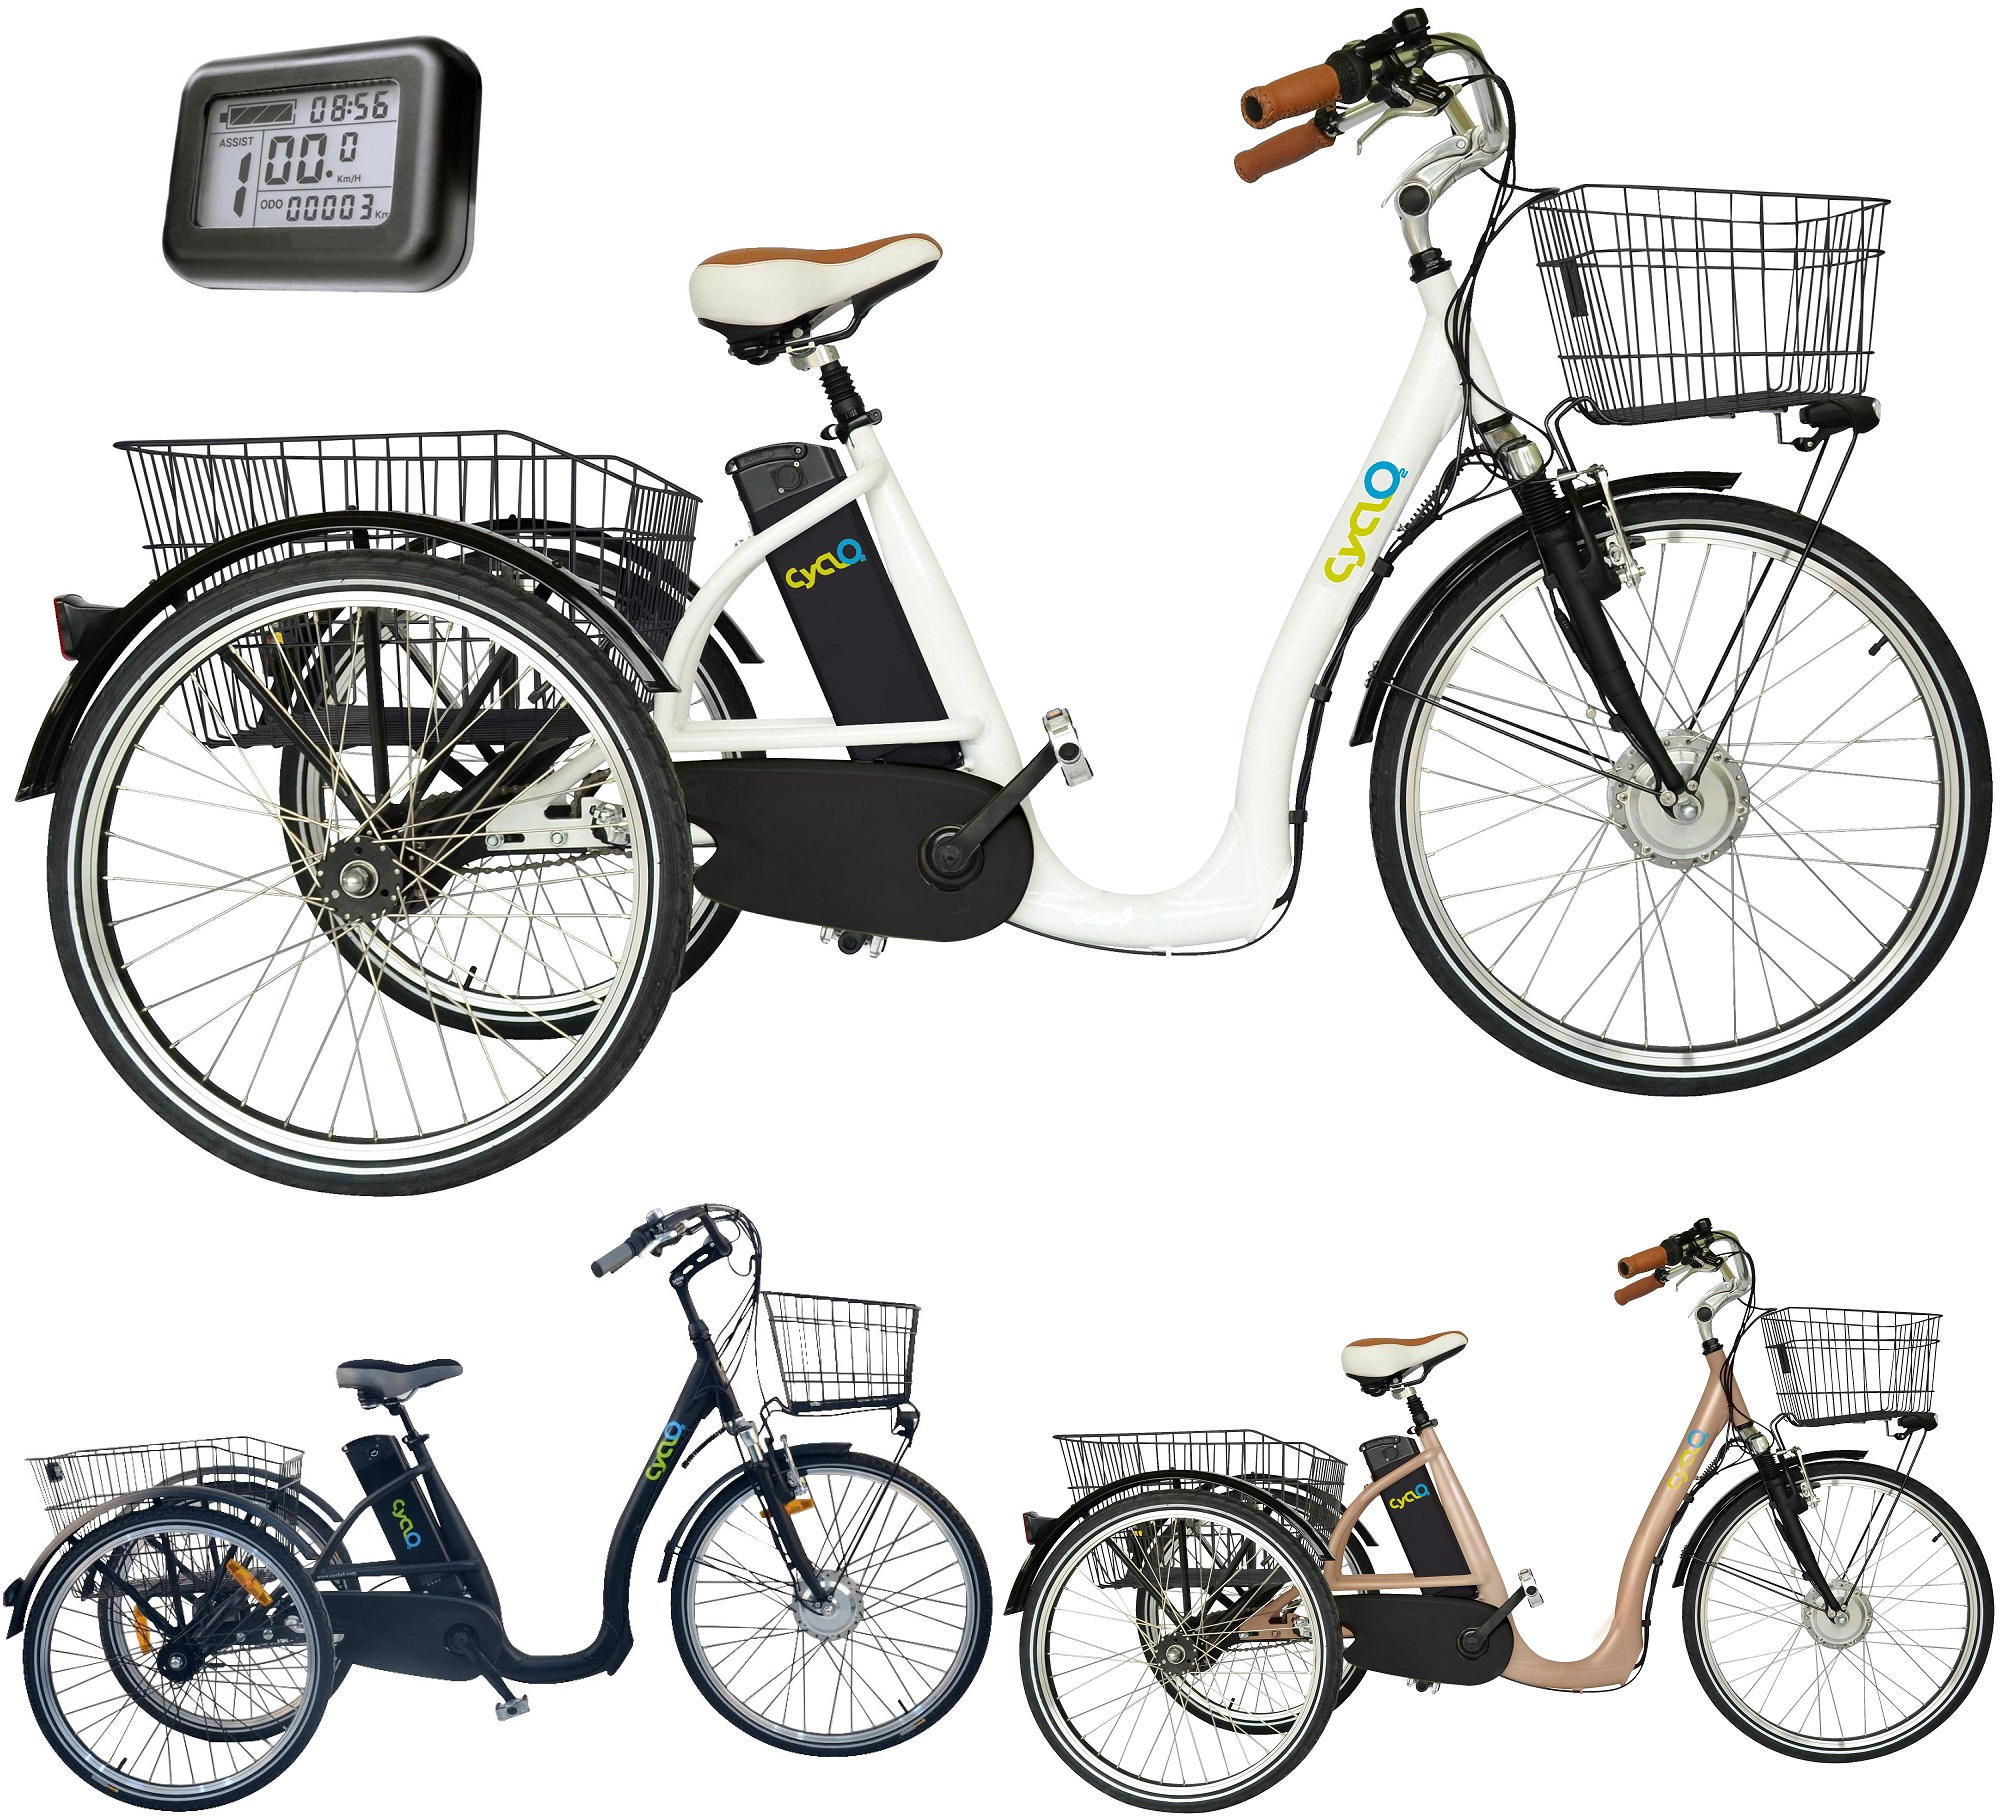 26 zoll elektro dreirad f r erwachsene 3 gang cyclo2 comfort26 senioren e bike ebay. Black Bedroom Furniture Sets. Home Design Ideas